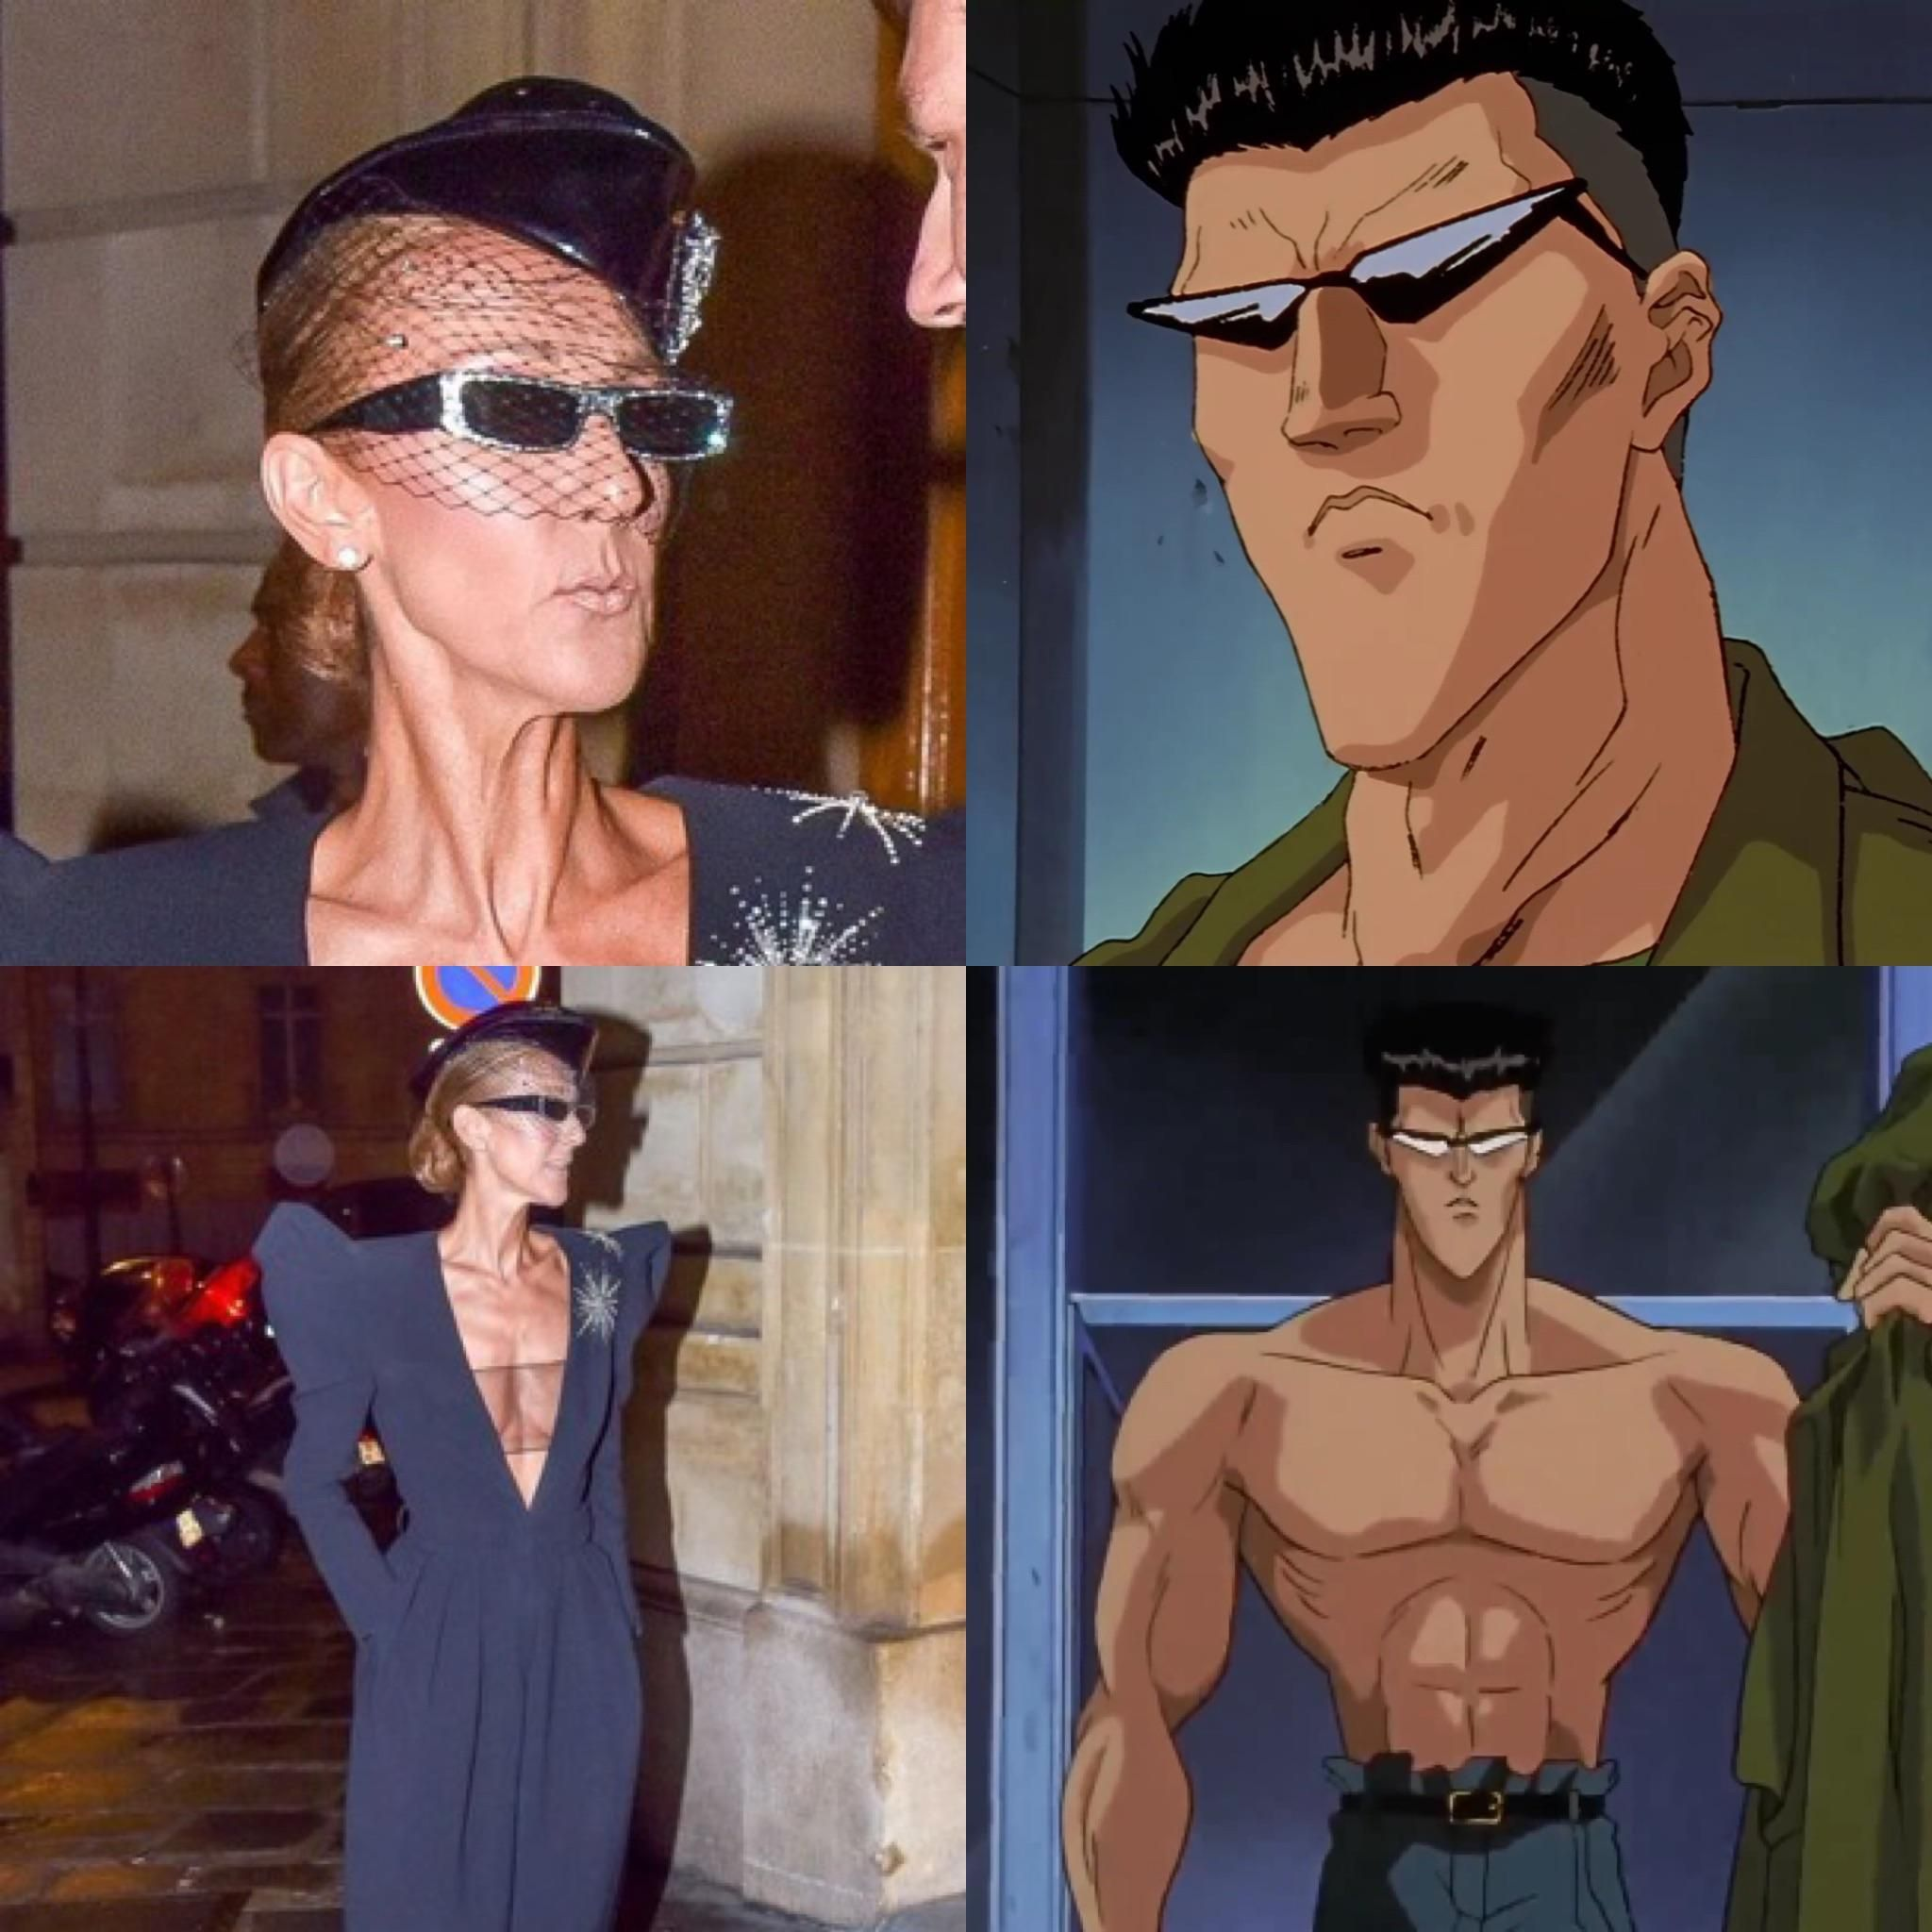 Pin By Rekoil From The Hailstorm On Transformers Celine Dion Anime Guys With Glasses Funny Laugh